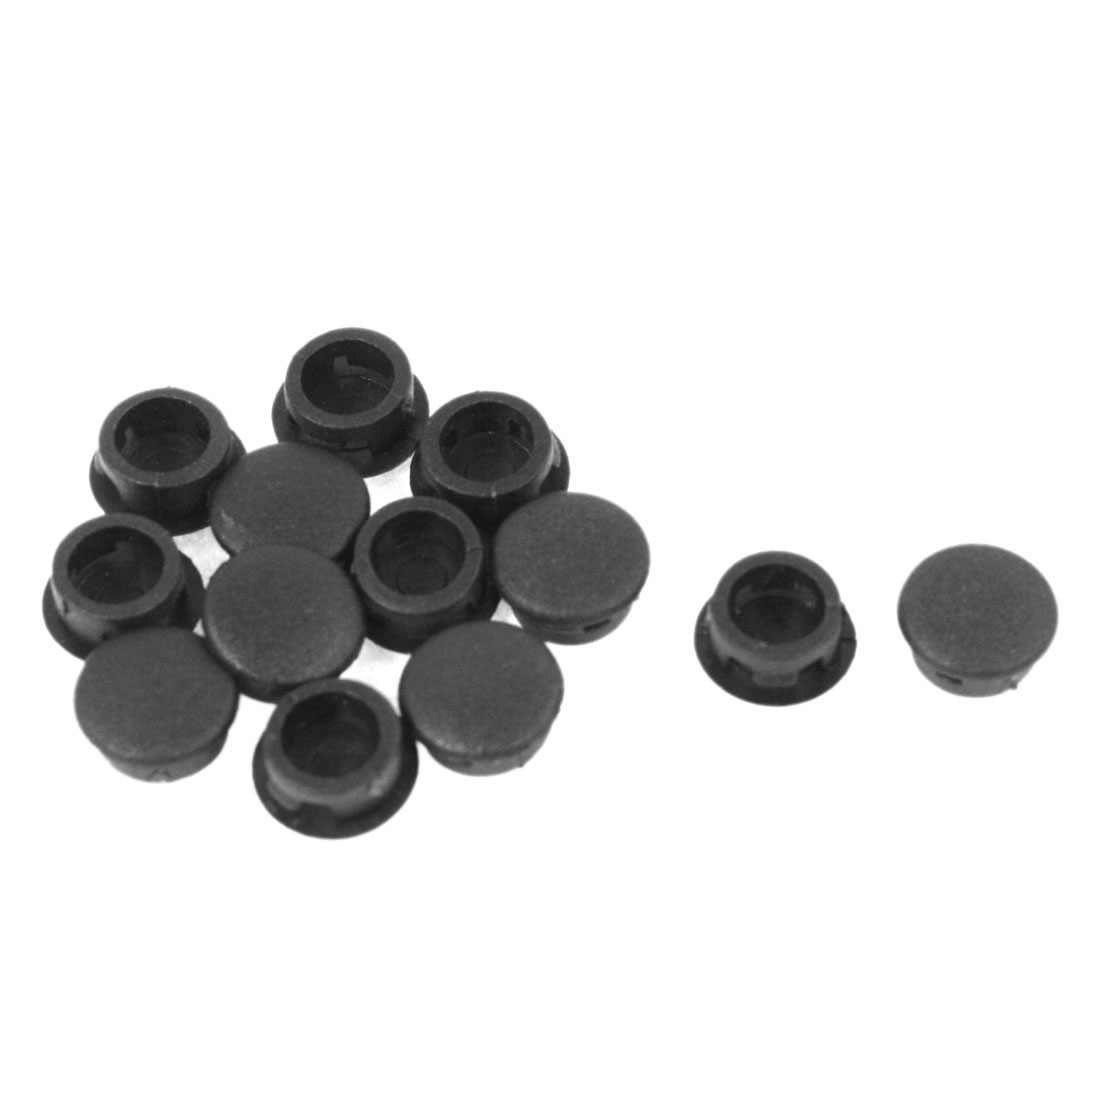 12 Pcs Black Plastic 10mm Dia Round Tubing Tube Insert Caps Covers